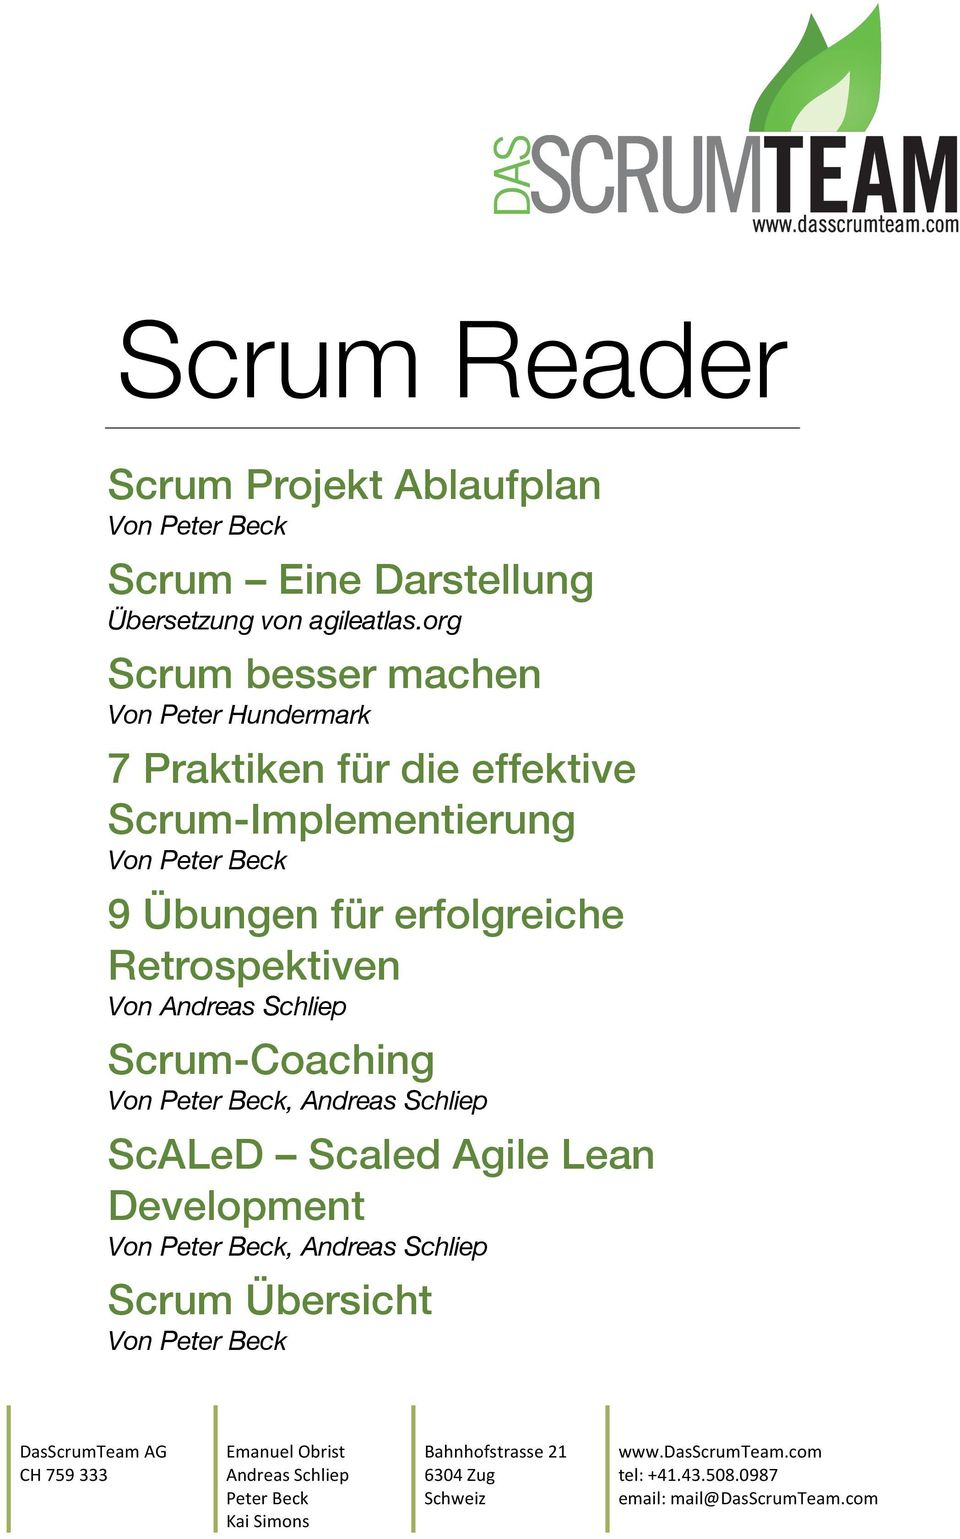 Retrospektiven Von Andreas Schliep Scrum-Coaching Von Peter Beck, Andreas Schliep ScALeD Scaled Agile Lean Development Von Peter Beck, Andreas Schliep